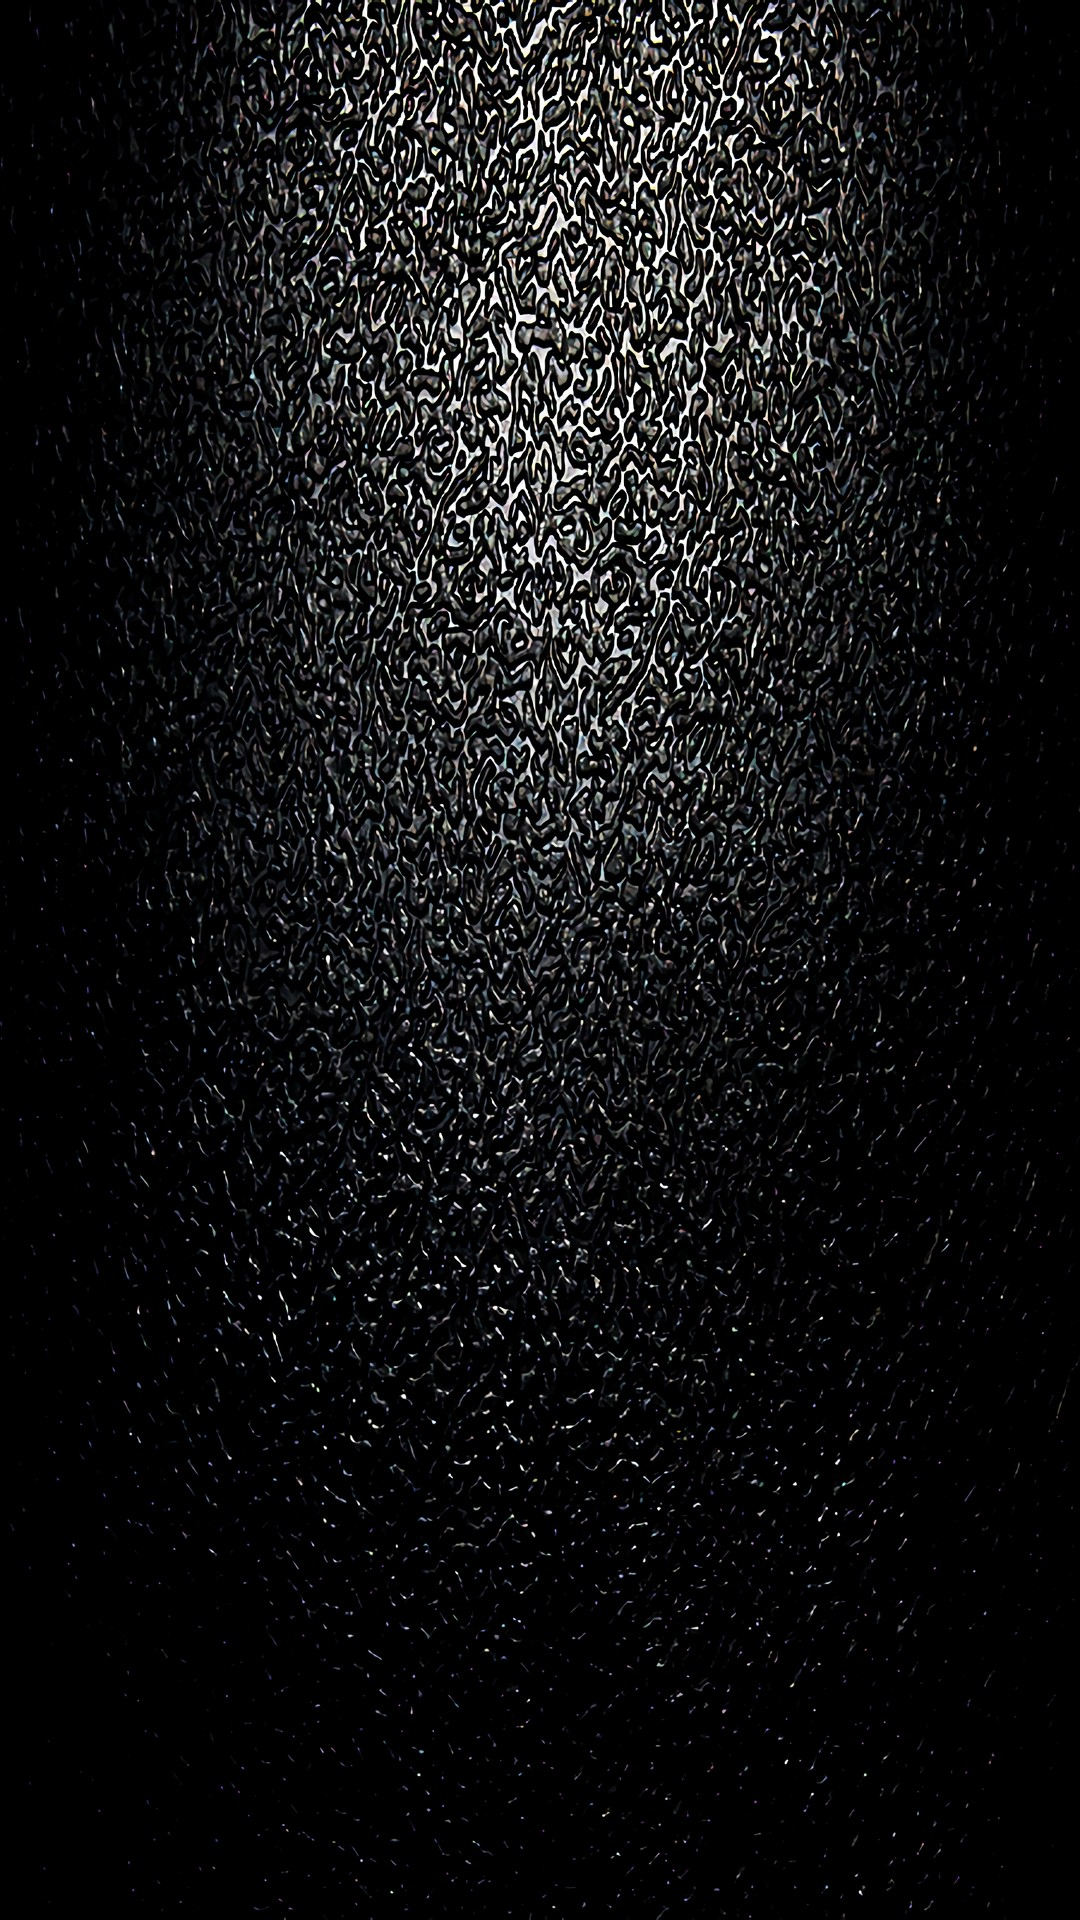 Black 1 wallpaper 1080x1920 for 1080 by 1920 wallpaper